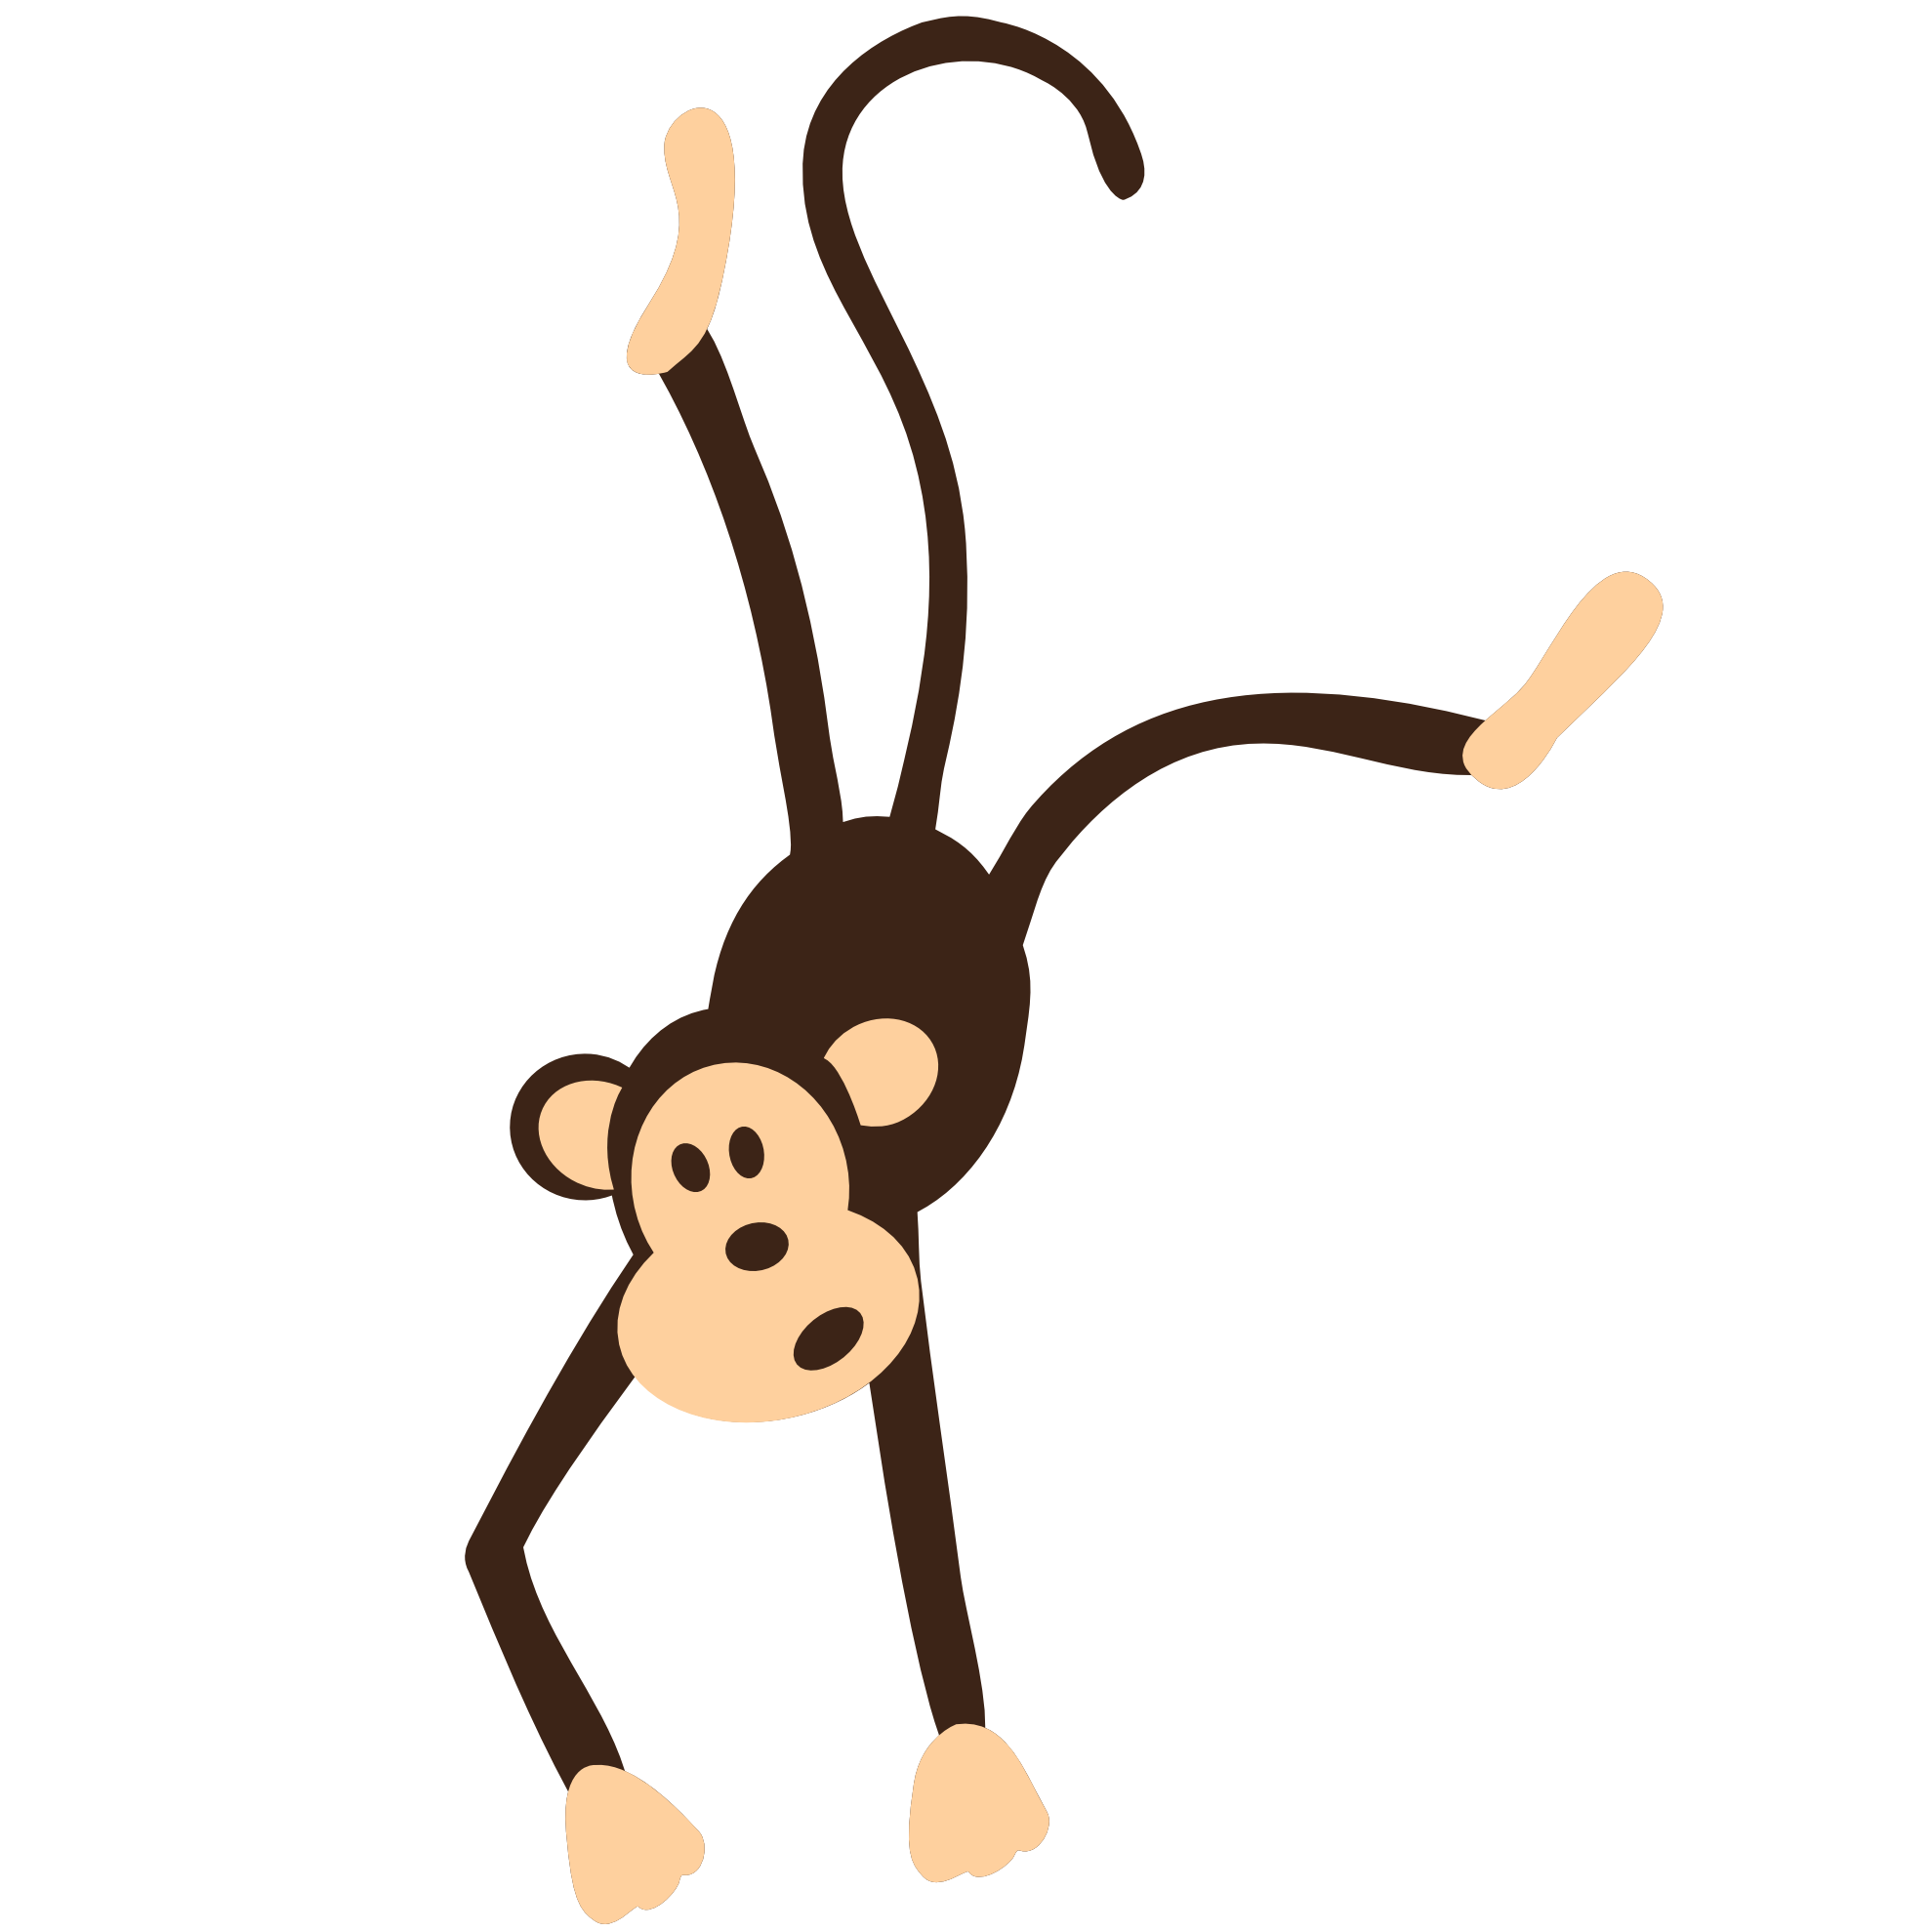 Circus clipart monkey. Png transparent free images